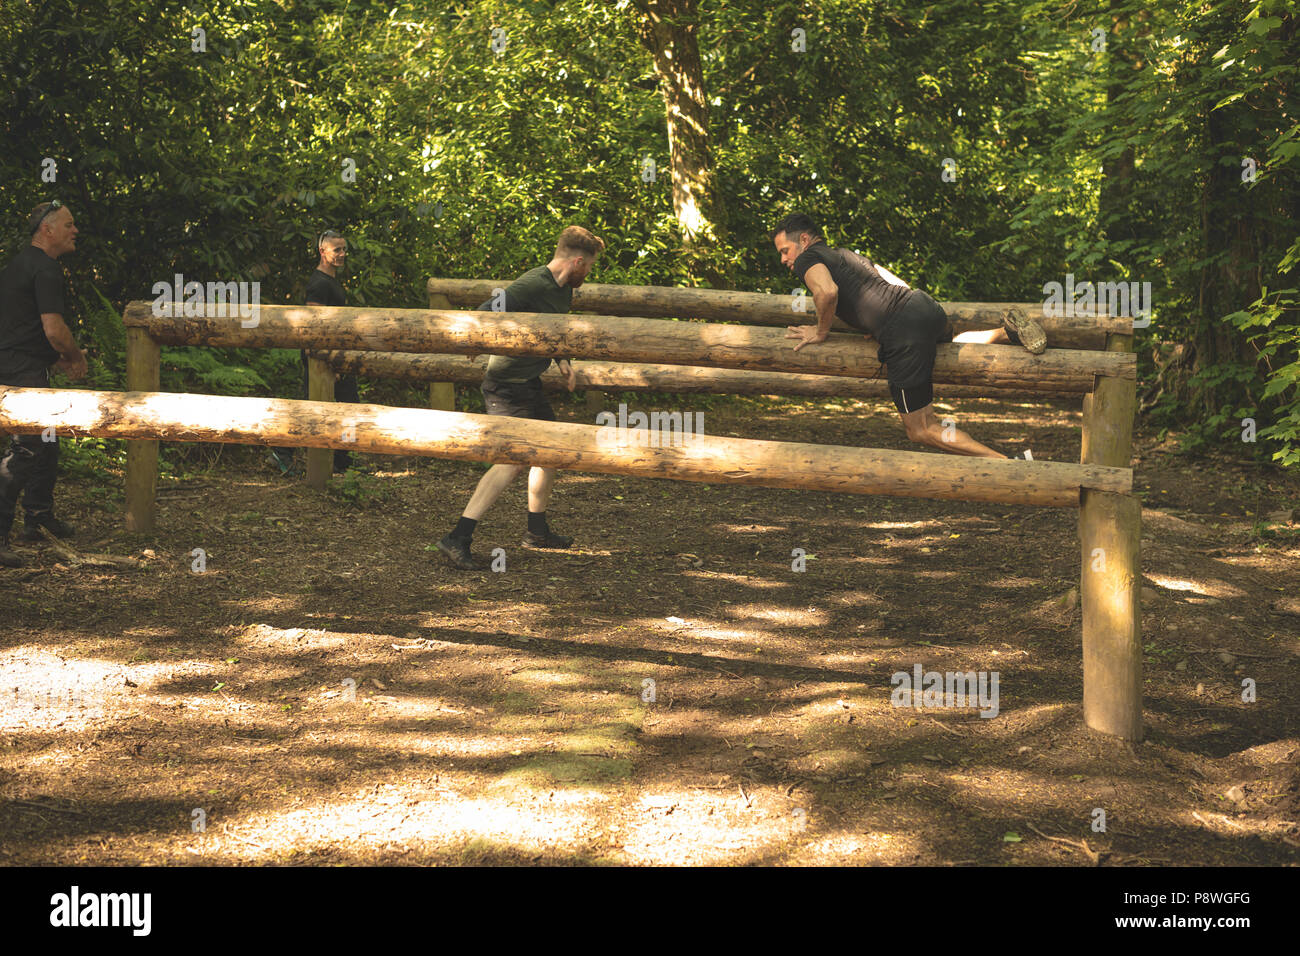 Group of mens training on fitness trail - Stock Image